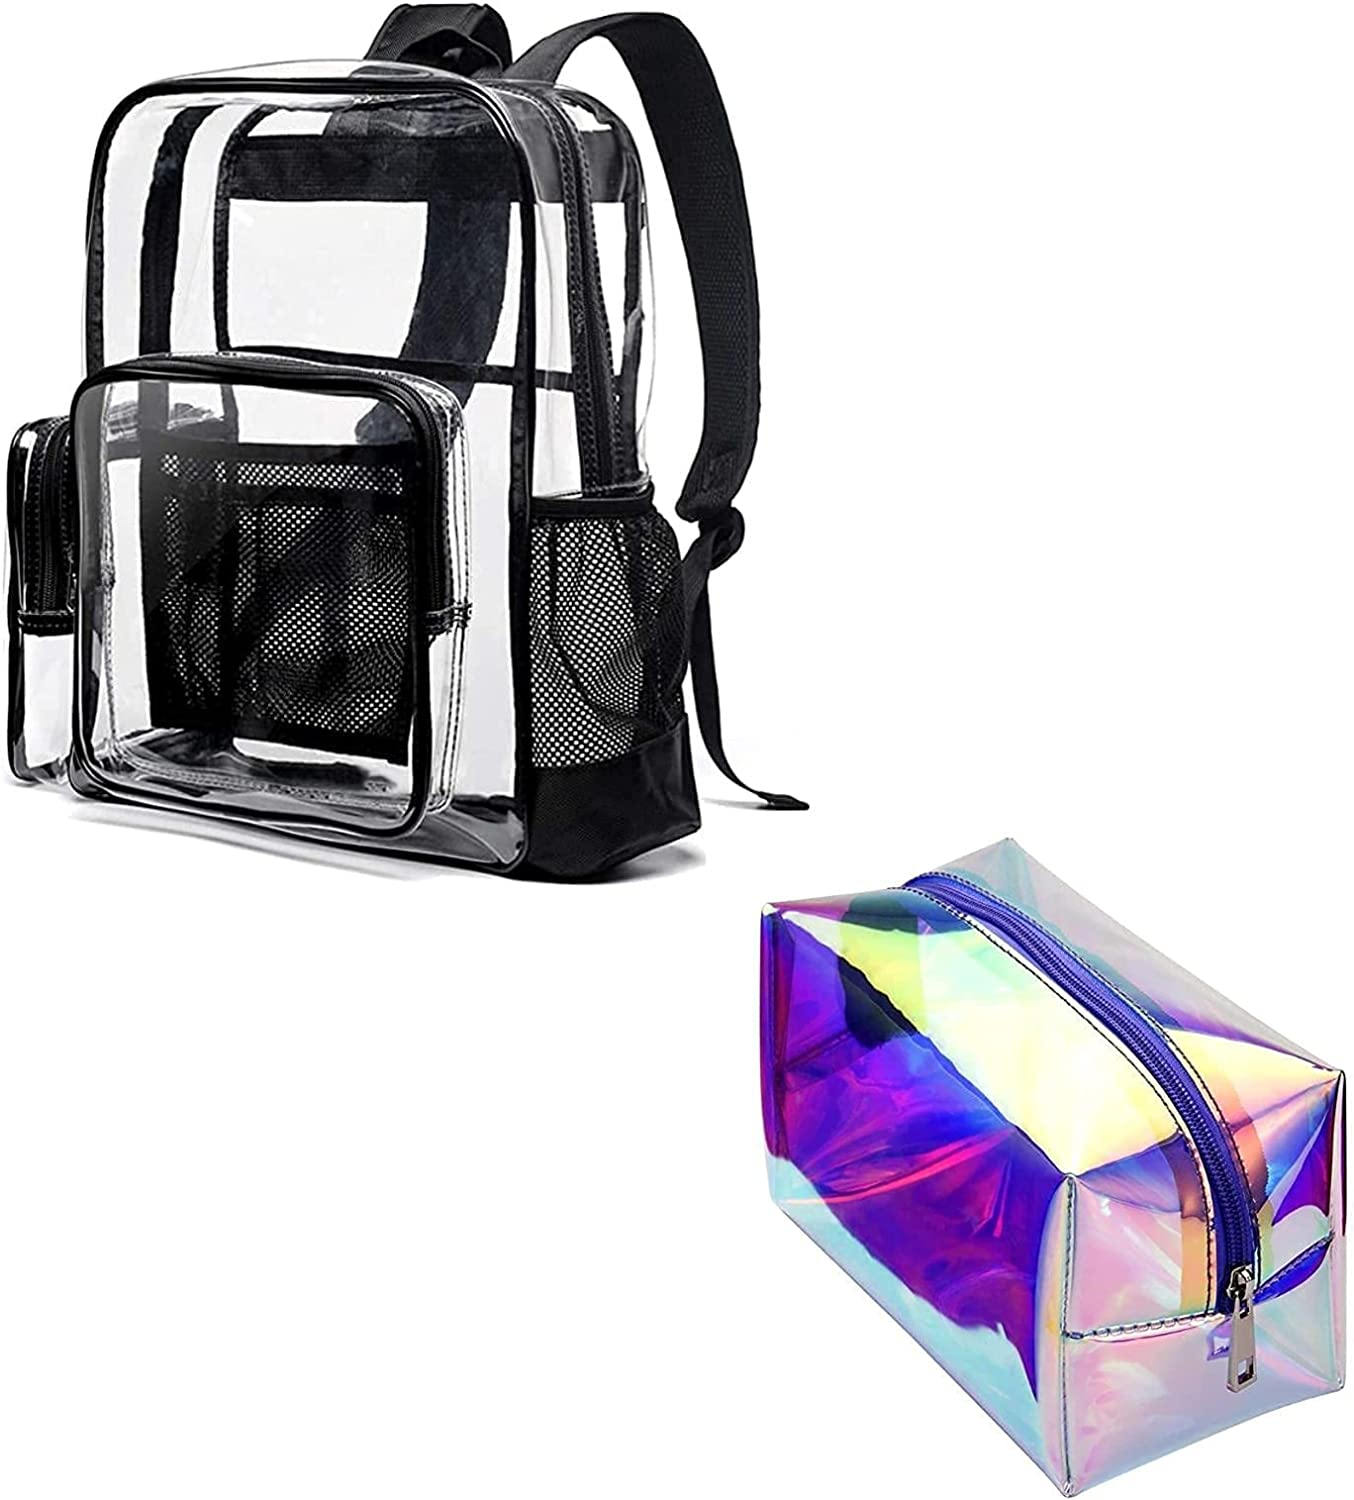 New sales 2021 new Clear Backpack Cambond Heavy Duty Hol Transparent and Backpacks